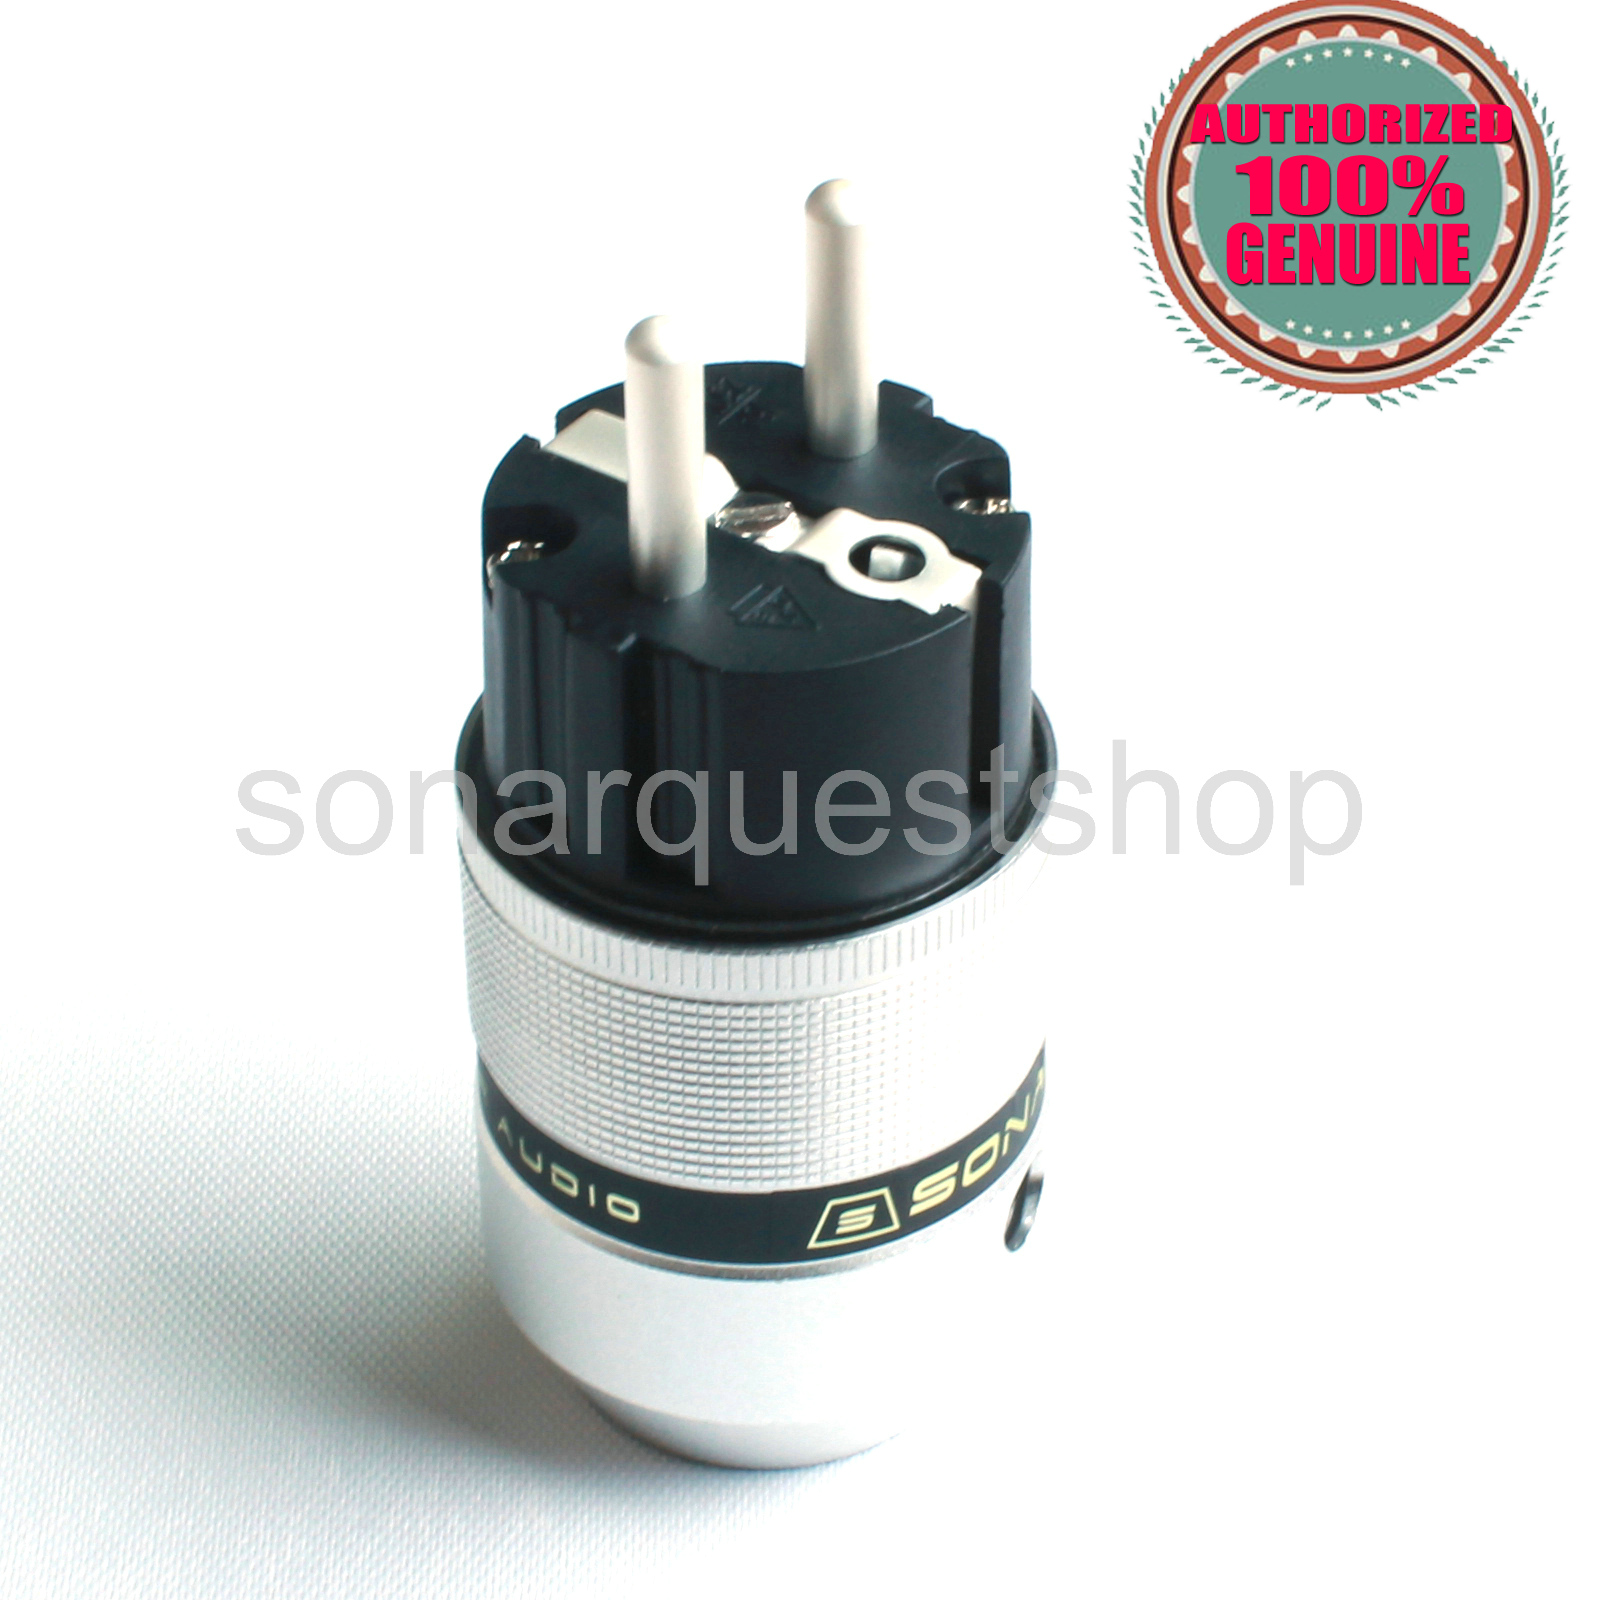 SONARQUEST E25 Ag(B) EU silver Plated UP Black Aluminum alloy Power Plug